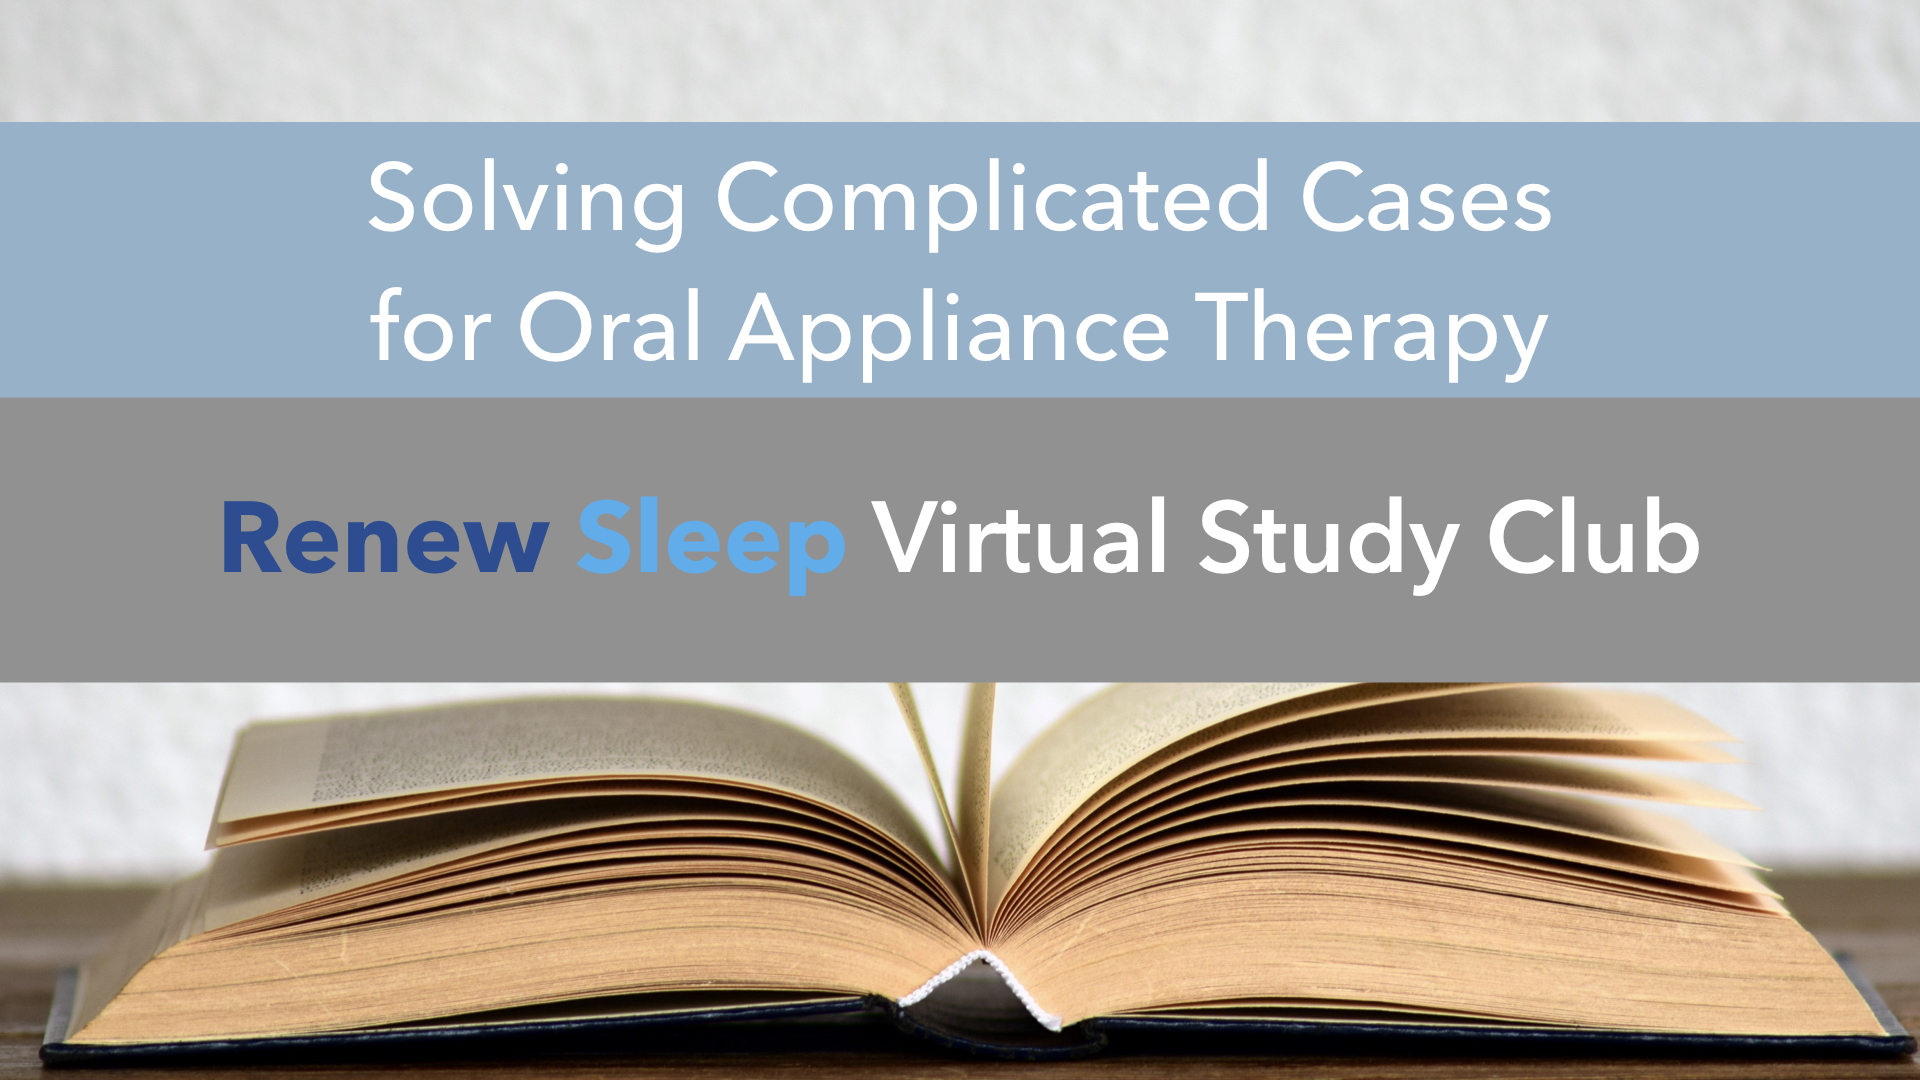 Thumbnail Slides Solving Complicated Cases for Oral Appliance Therapy.001.jpeg